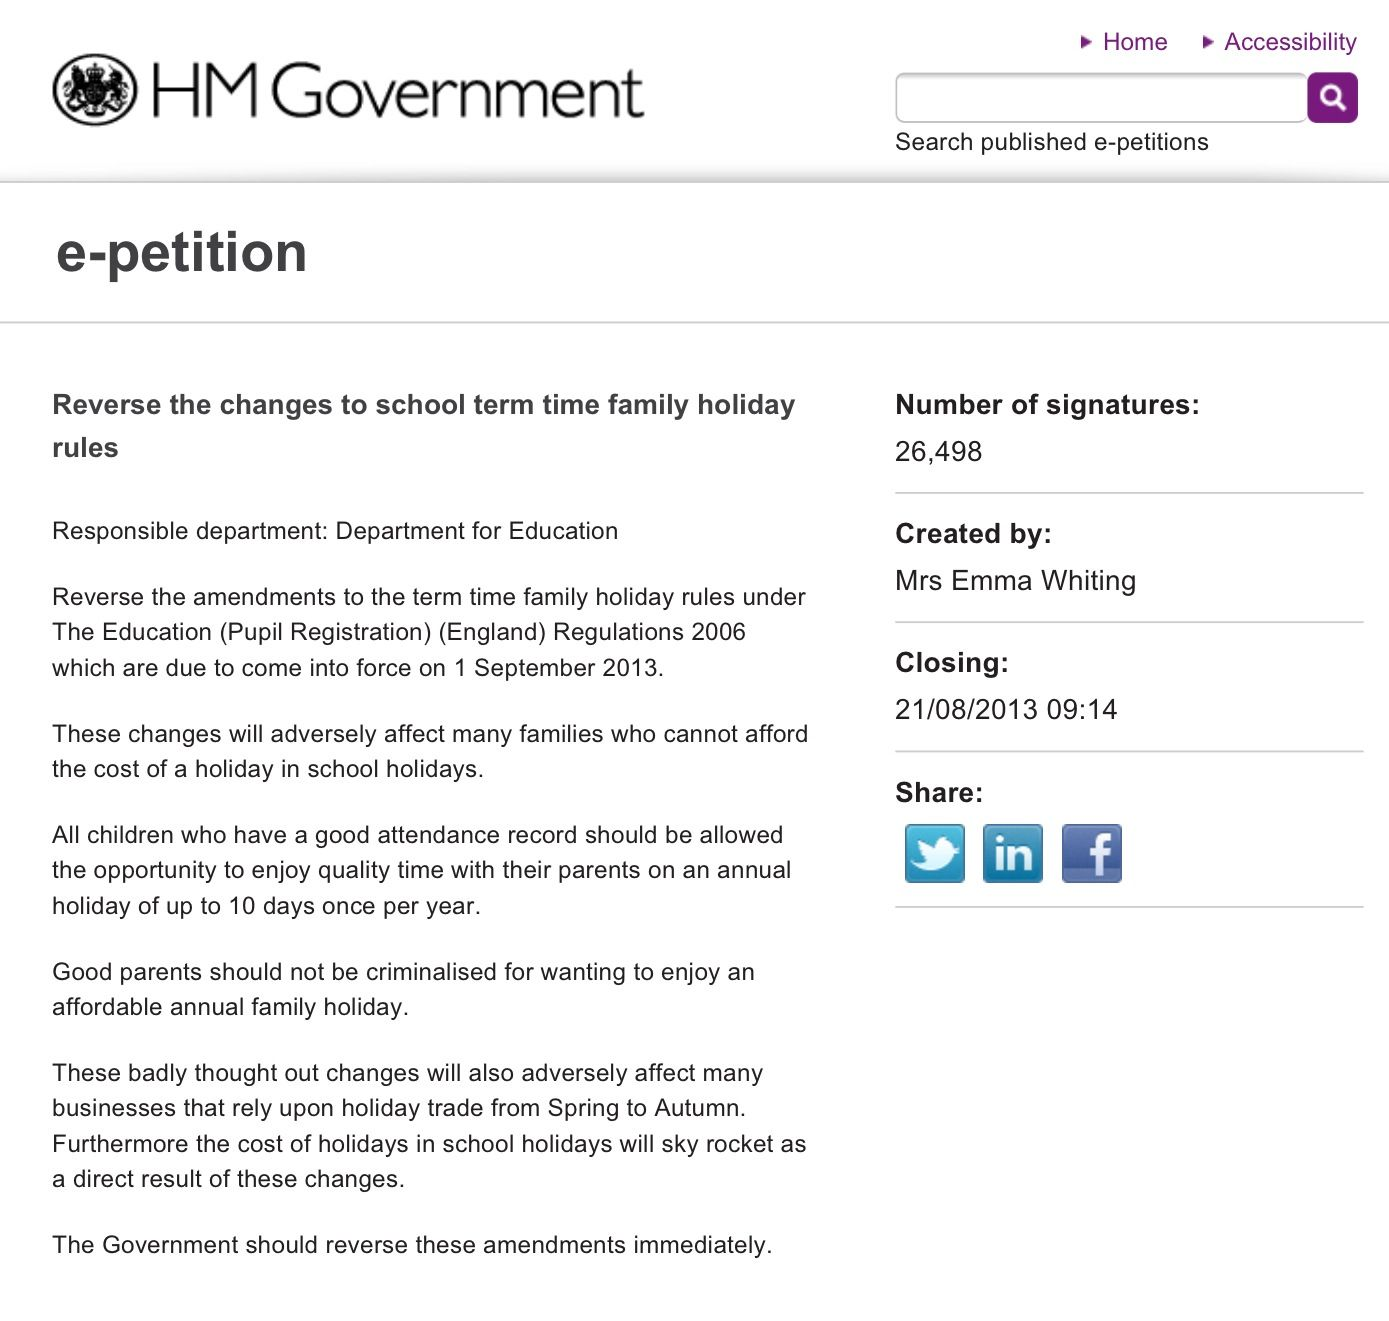 Reverse the changes to school term time family holiday rules. Please read, sign and share this e-petition.  http://epetitions.direct.gov.uk/petitions/49640